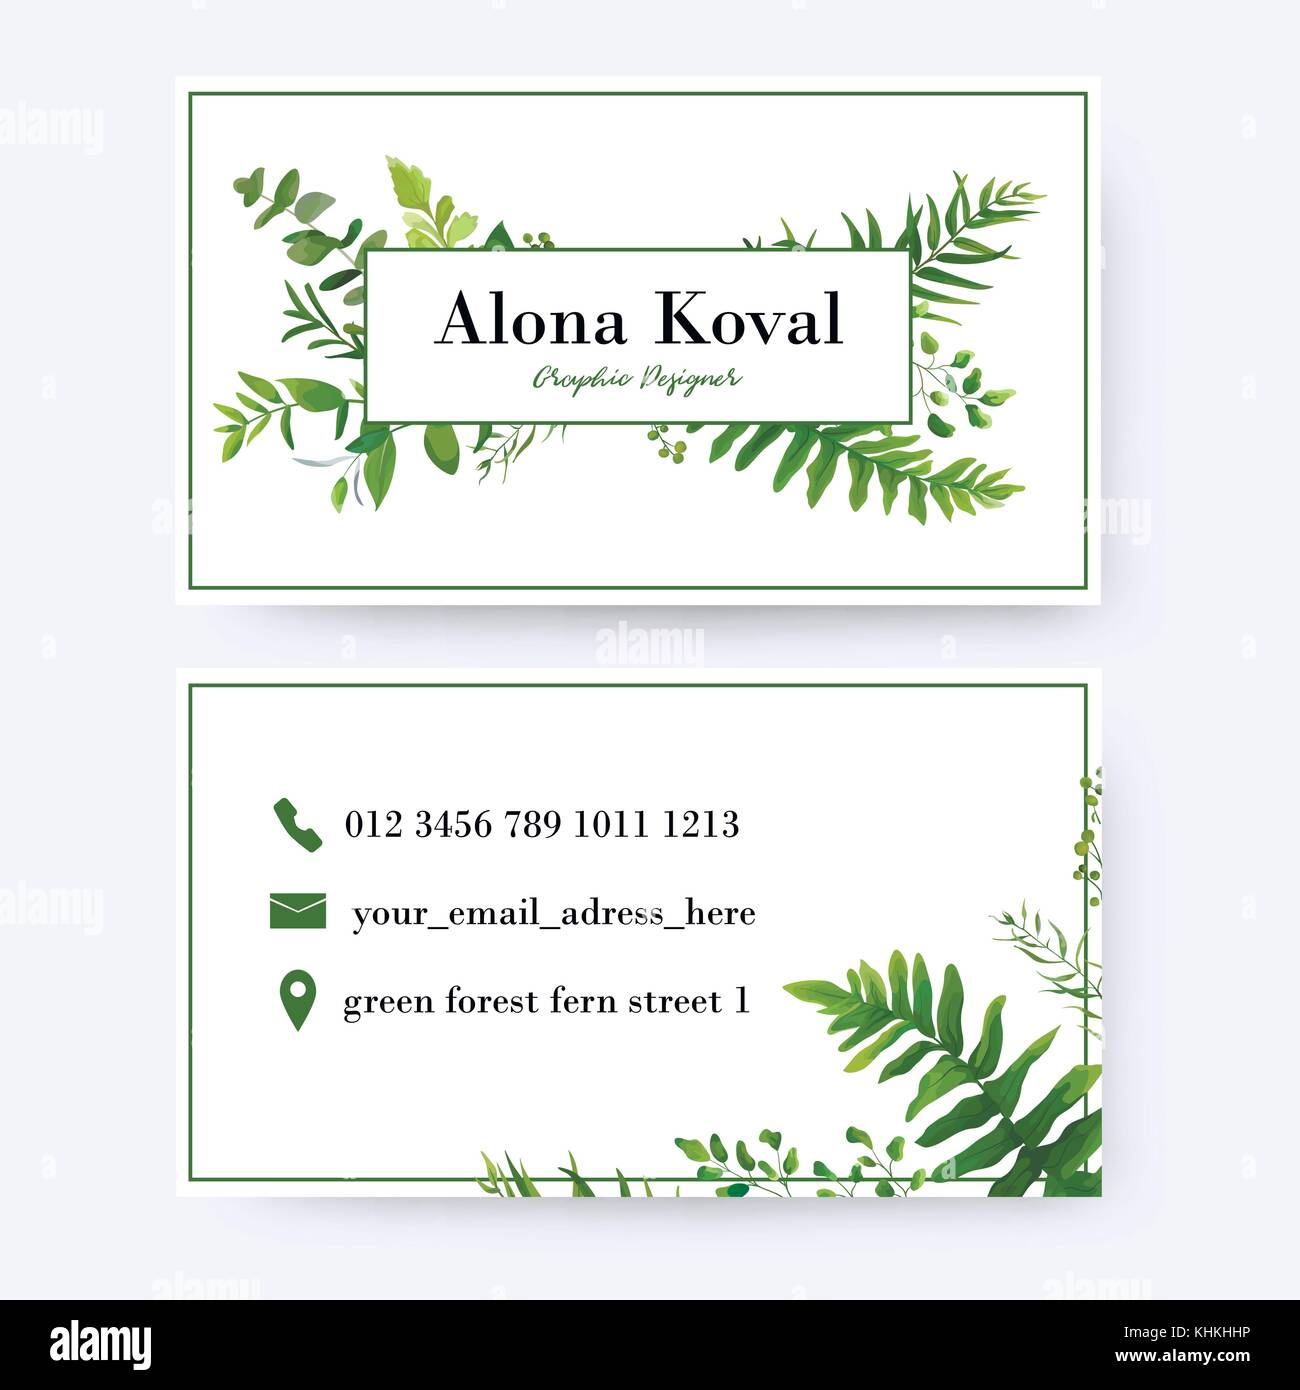 Floral business card design. Vintage, rustic eucalyptus green herbs ...